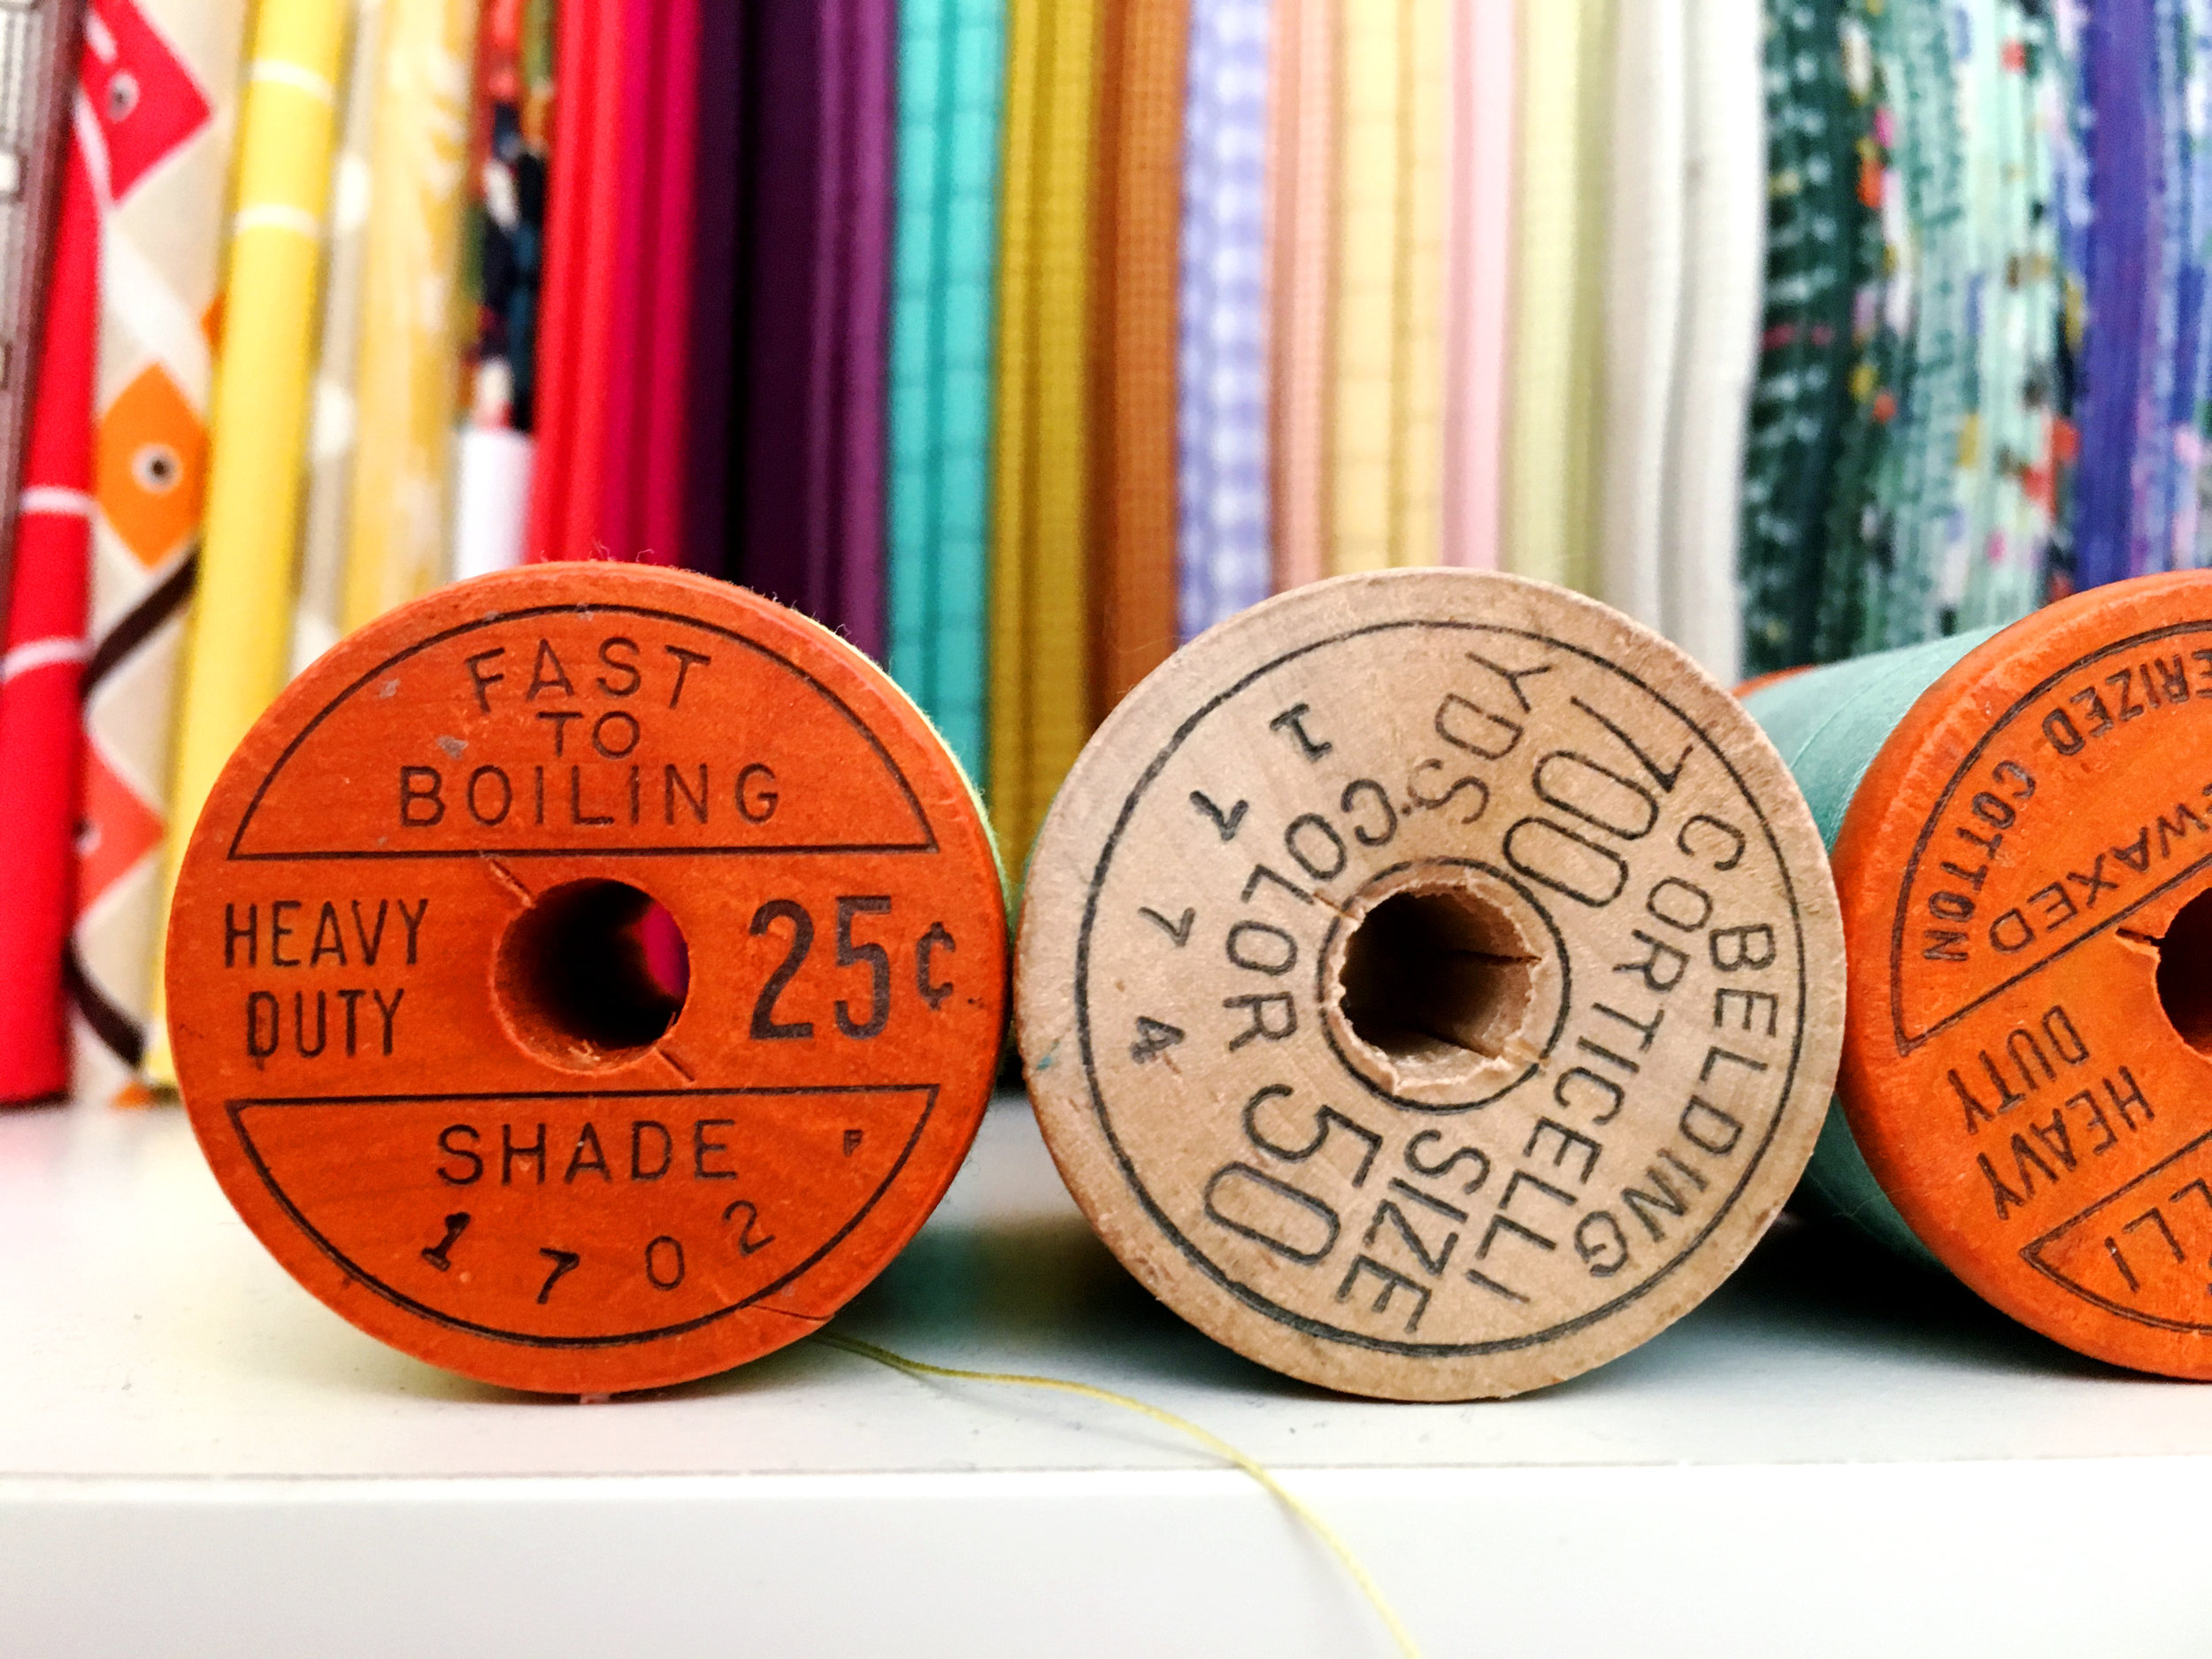 Vintage thread spools. They appeal to my 40-something-year-old self.